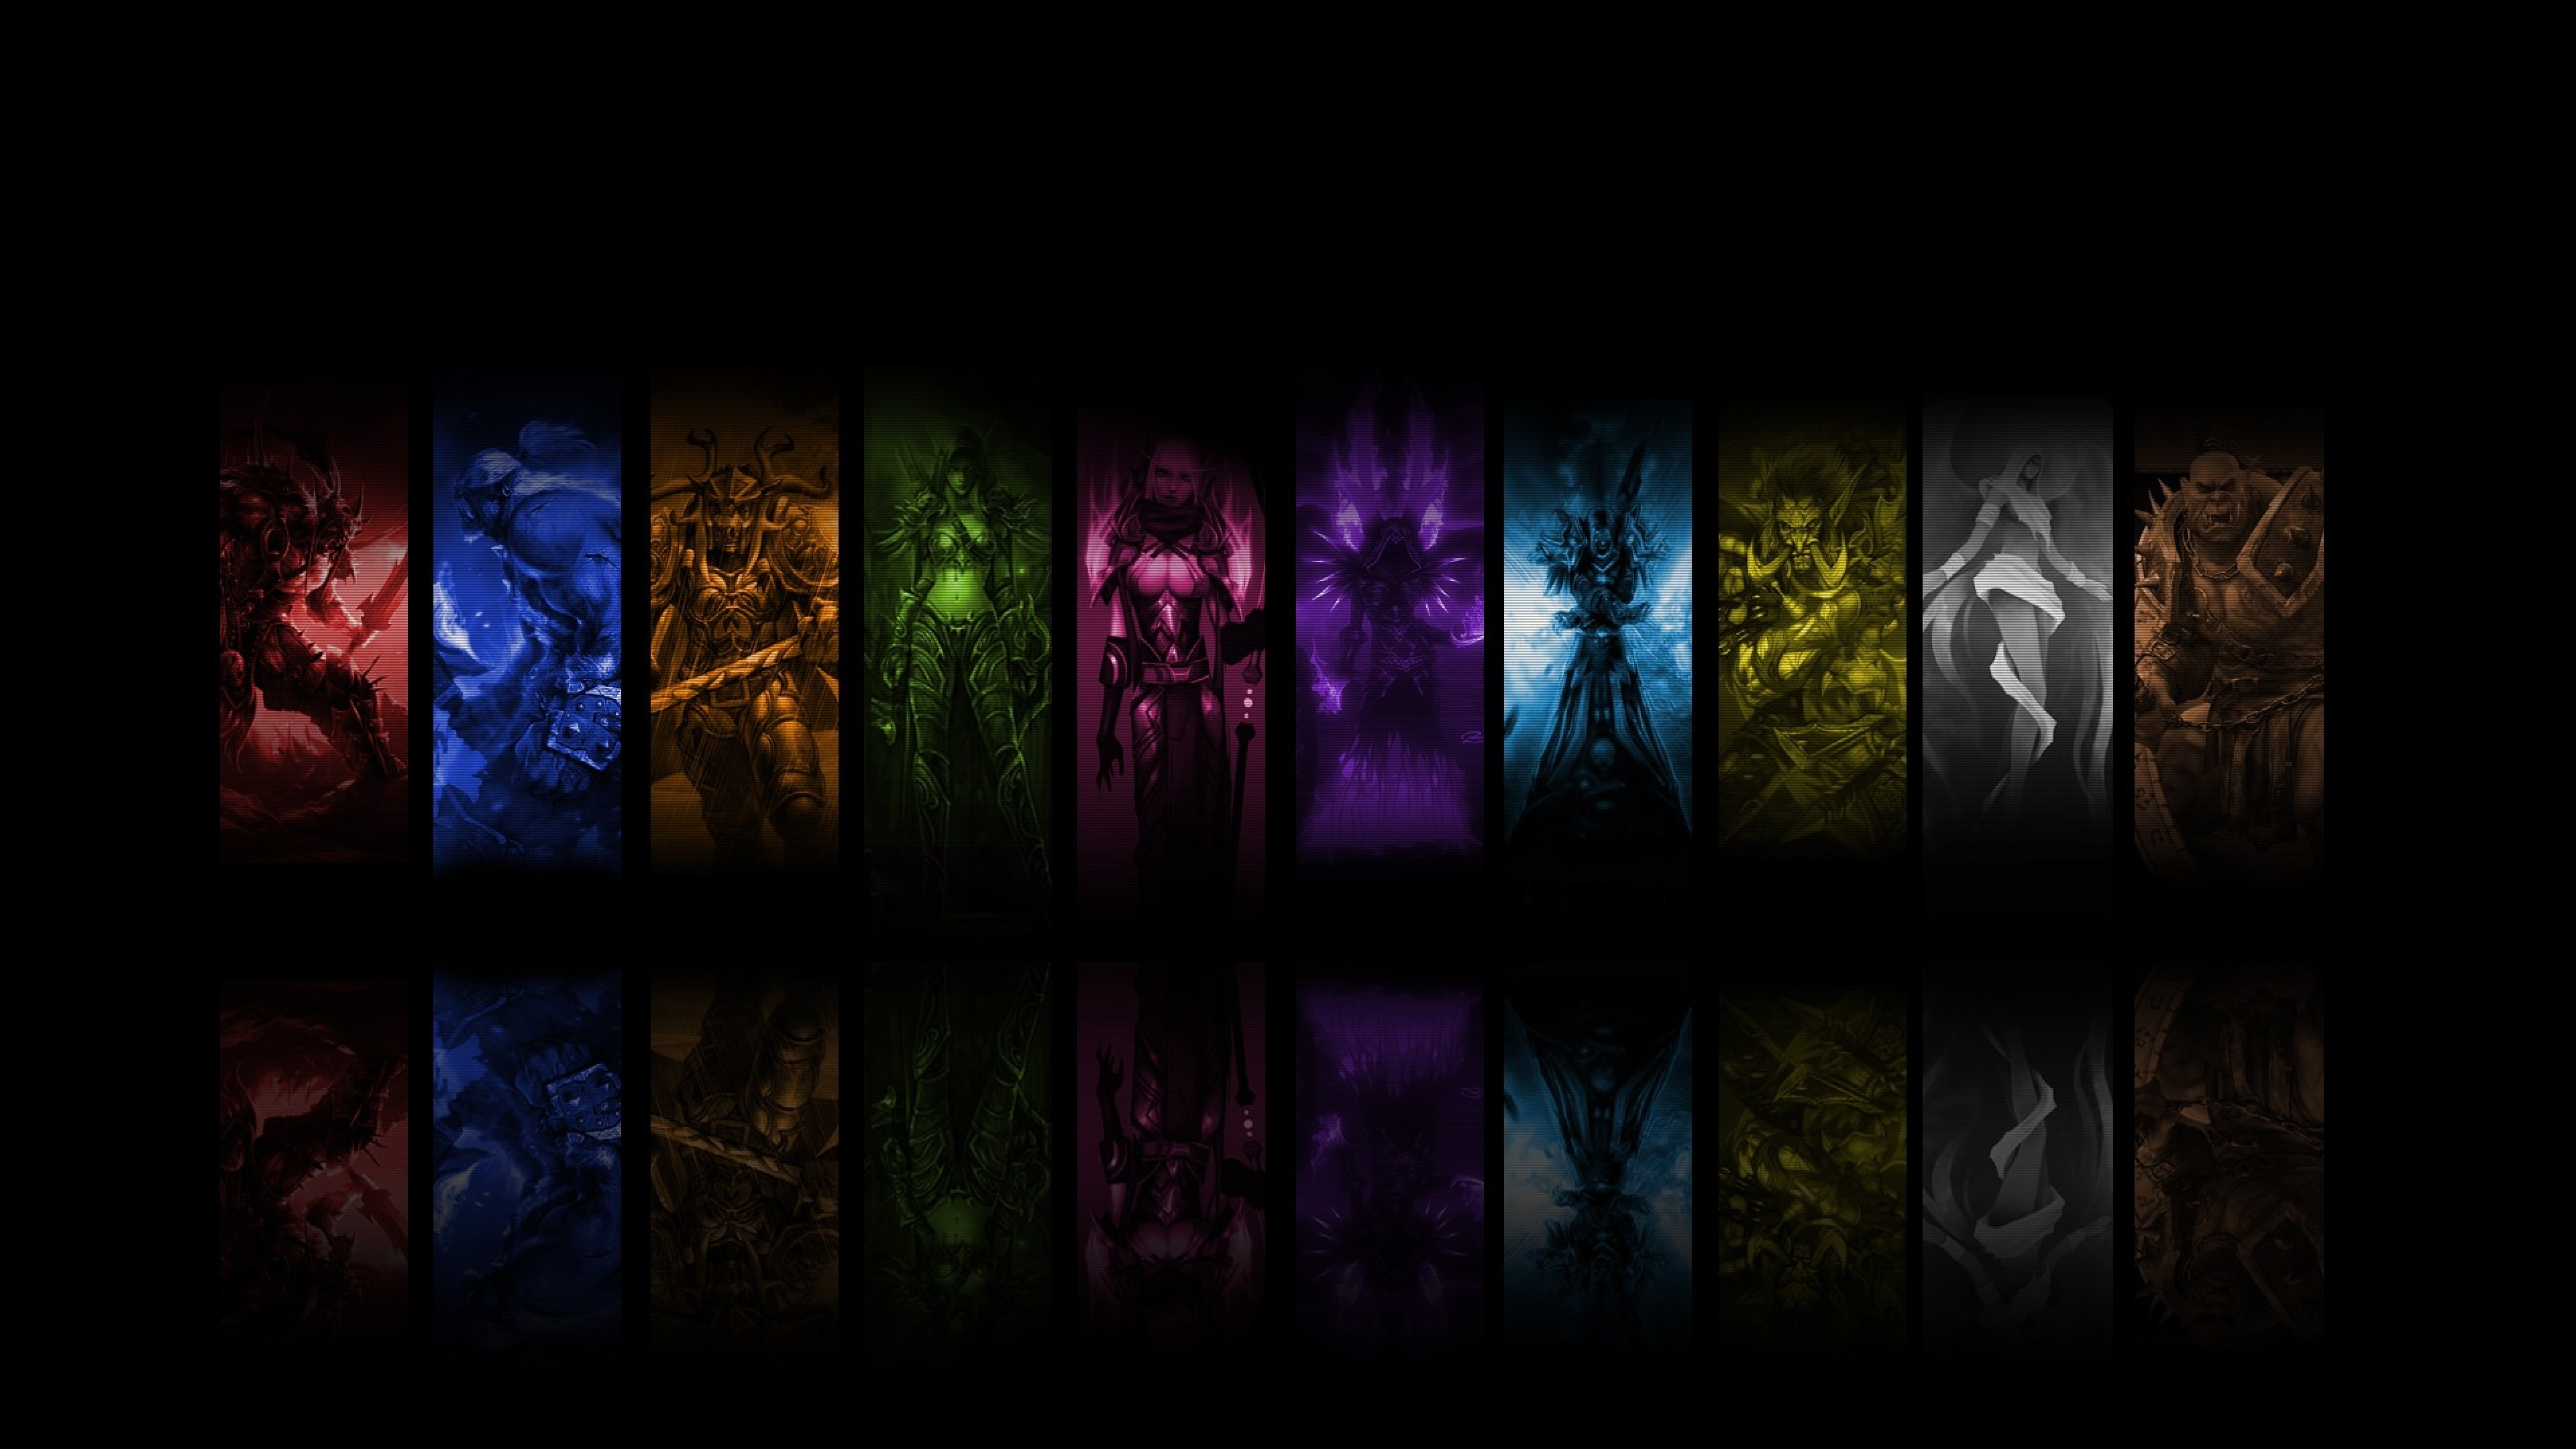 Download Wallpaper 3840x2160 World of warcraft Priest mage Shots 3840x2160